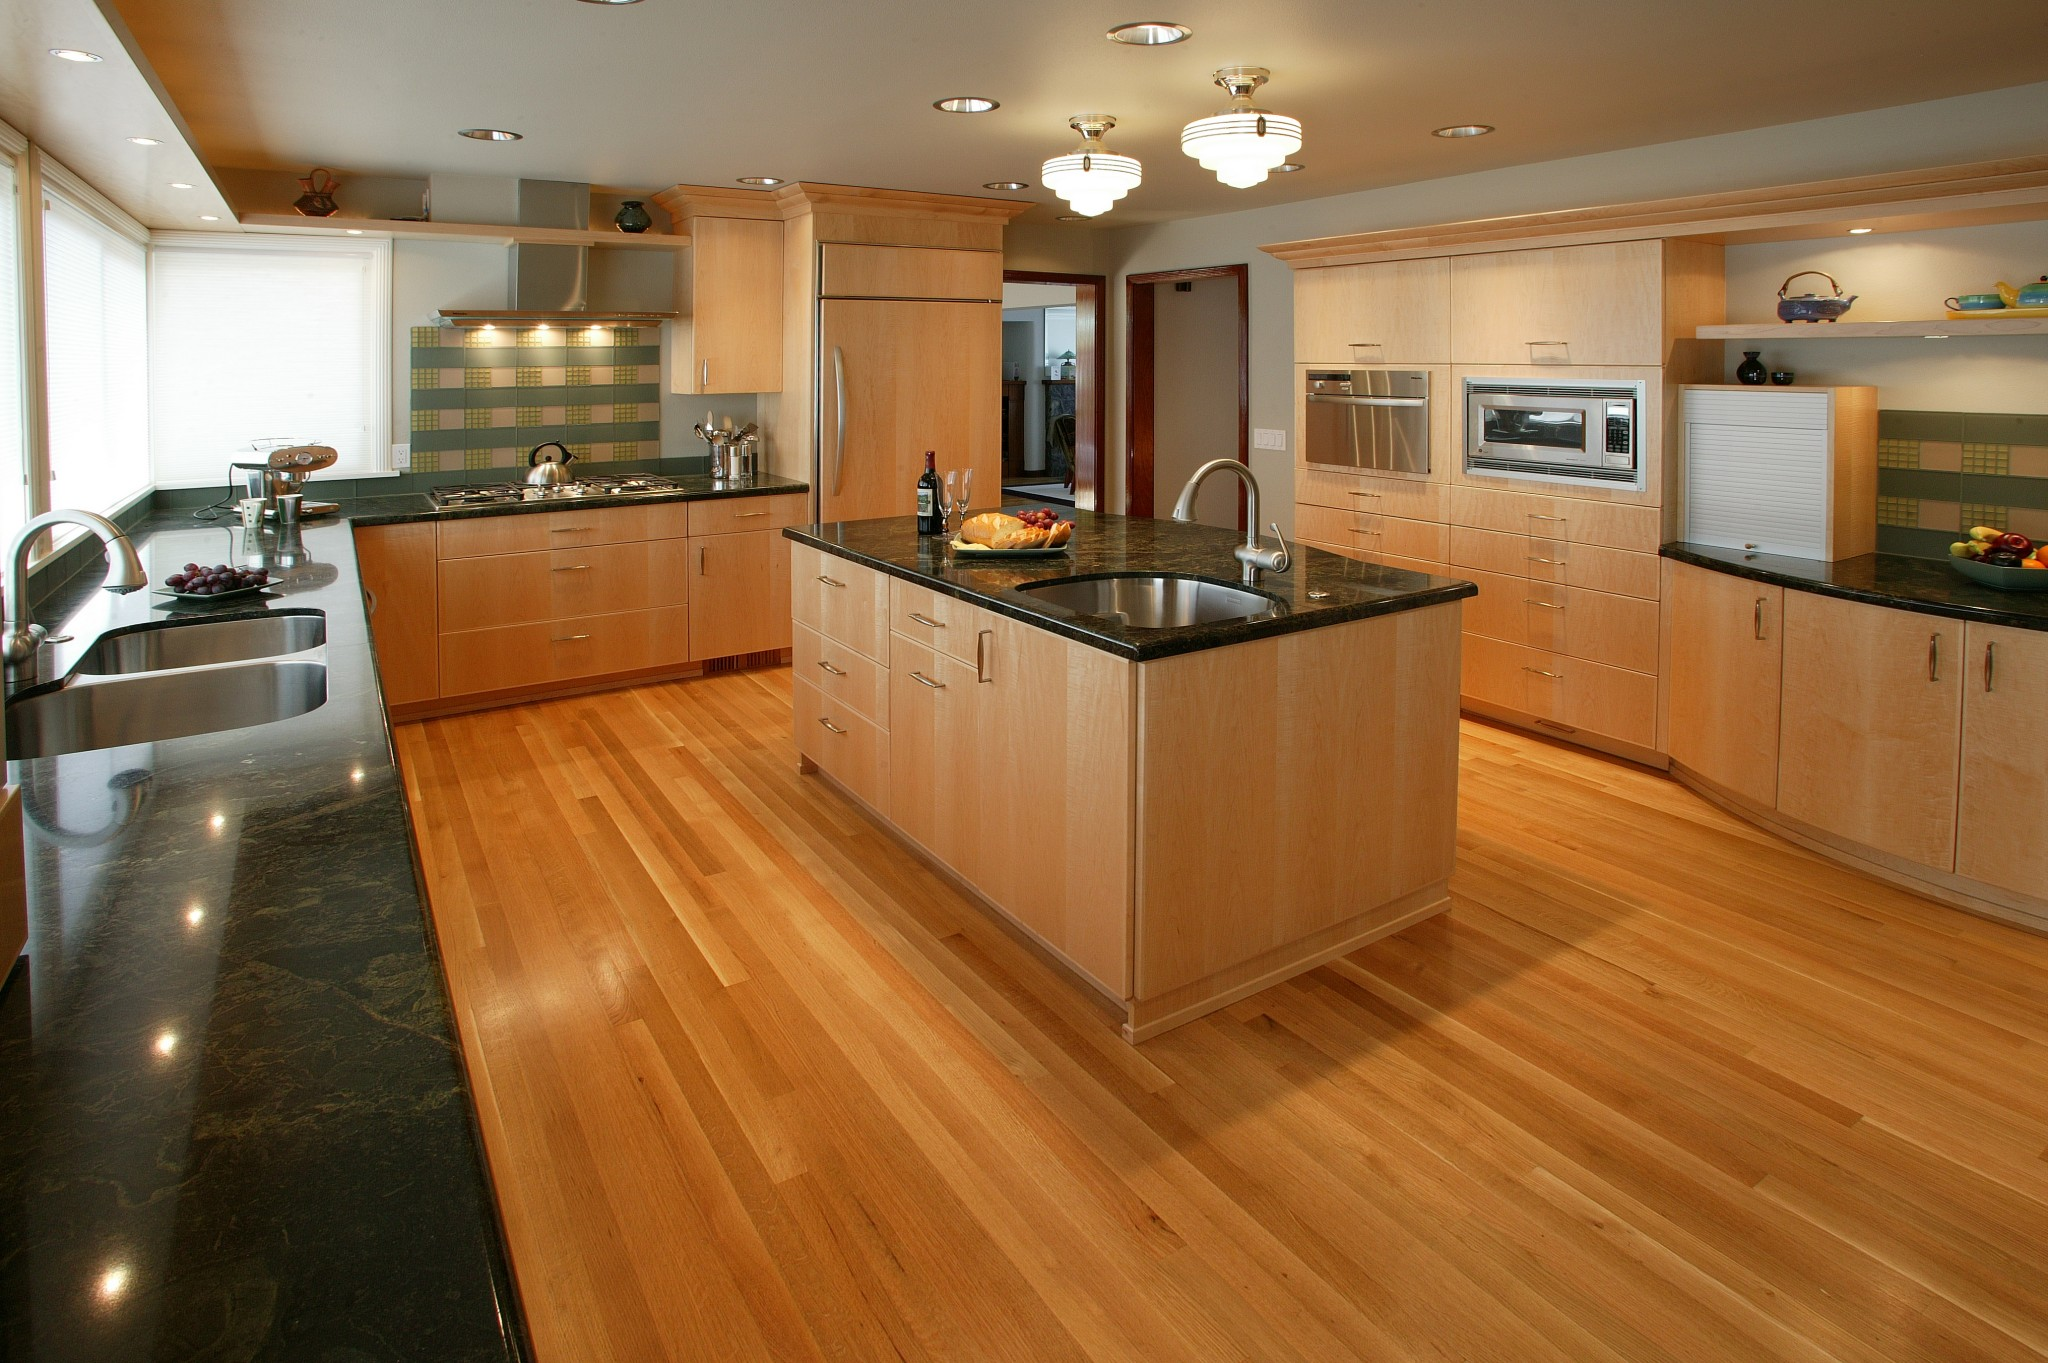 Kitchen Remodel | M.R. Construction | Tacoma, WA